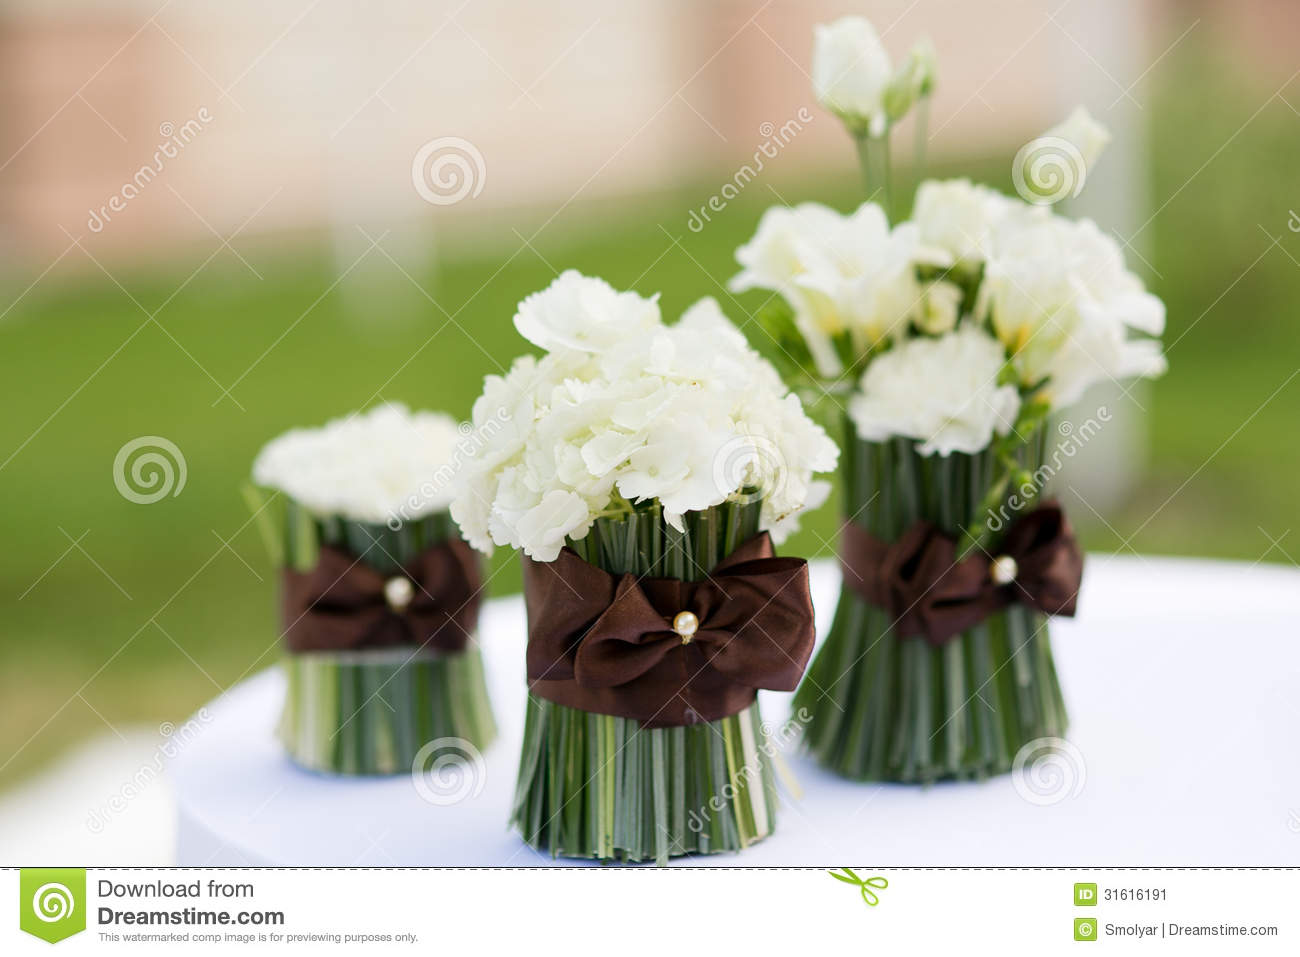 Wedding Ceremony Flowers Decor Stock Image - Image of stylish, white ...